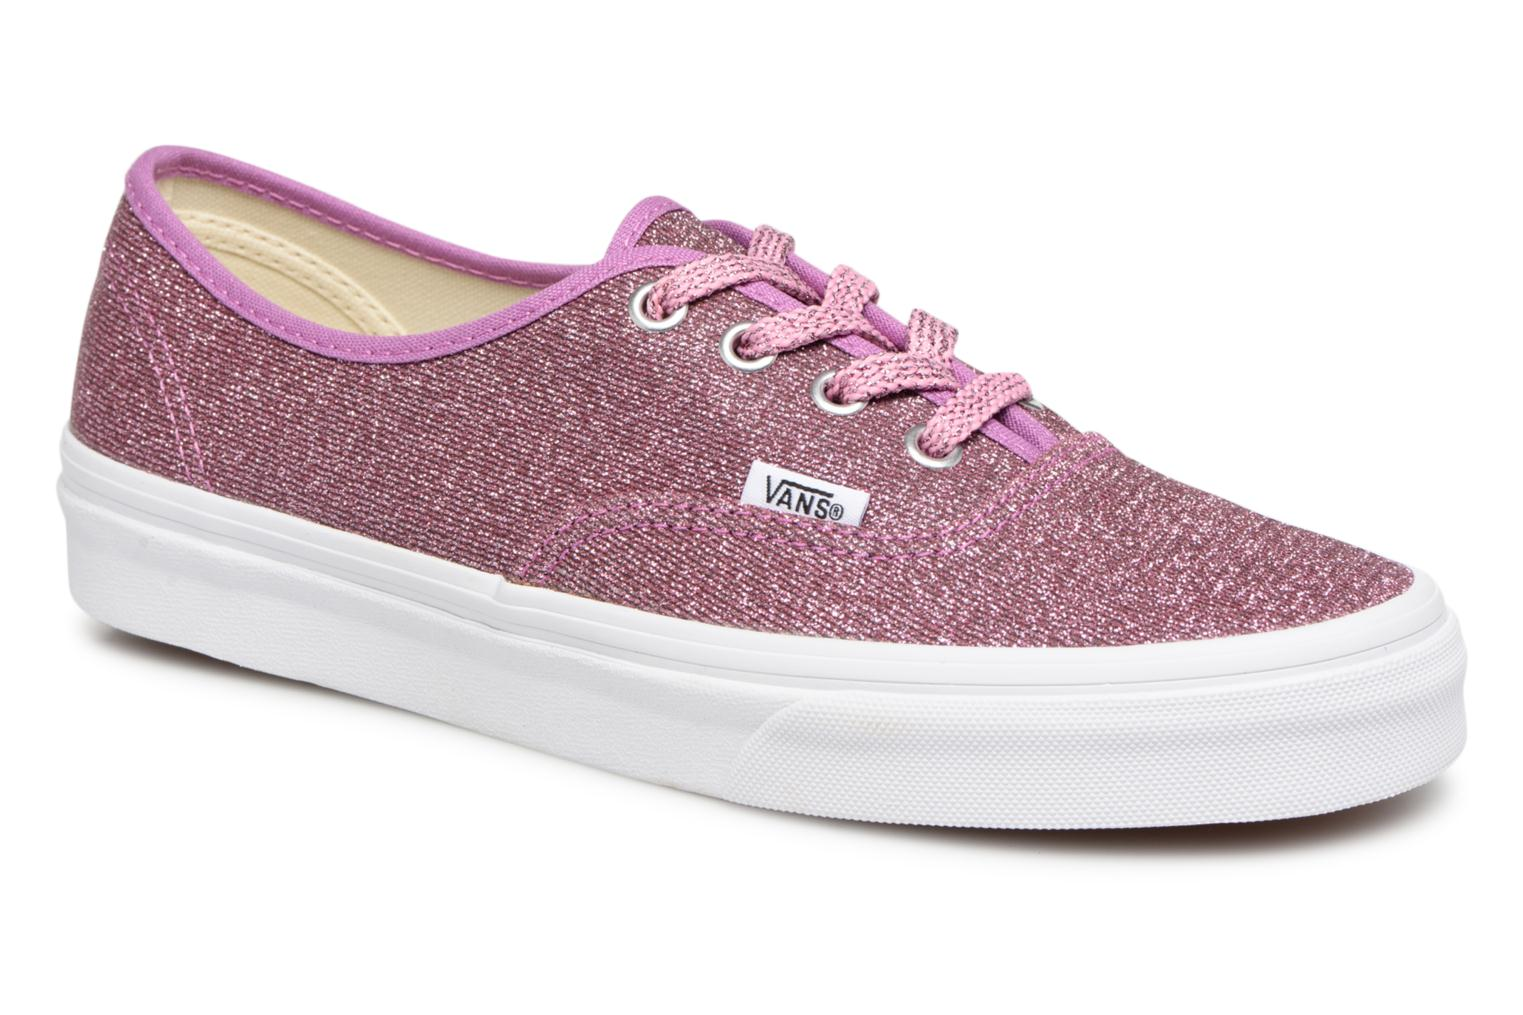 Vans Authentic w (Rose) - Baskets en Más cómodo Confortable et belle